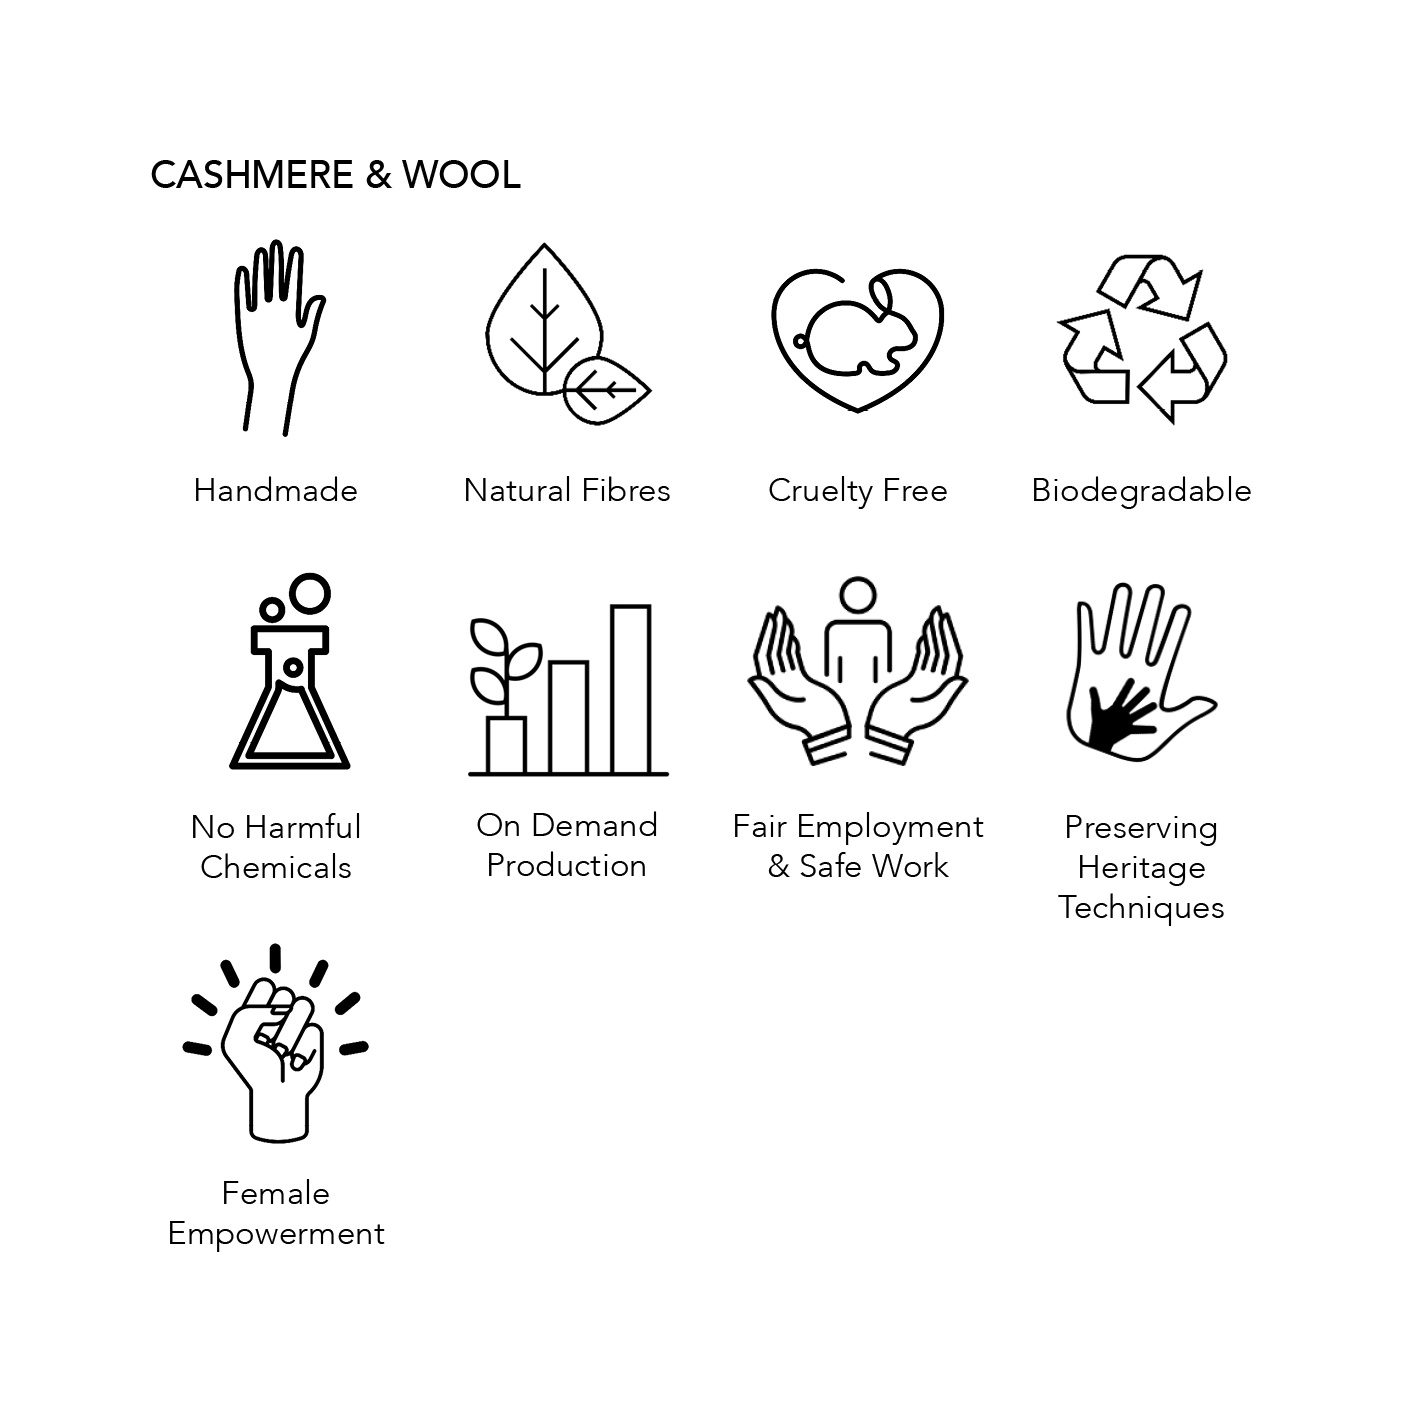 Thread Tales Cashmere & Wool Blend Fabric Sustainability Credentials; handmade, natural fibres, cruelty free, biodegradable, no harmful chemicals, on demand production, fair employment and safe work, preserving heritage techniques, female empowerment